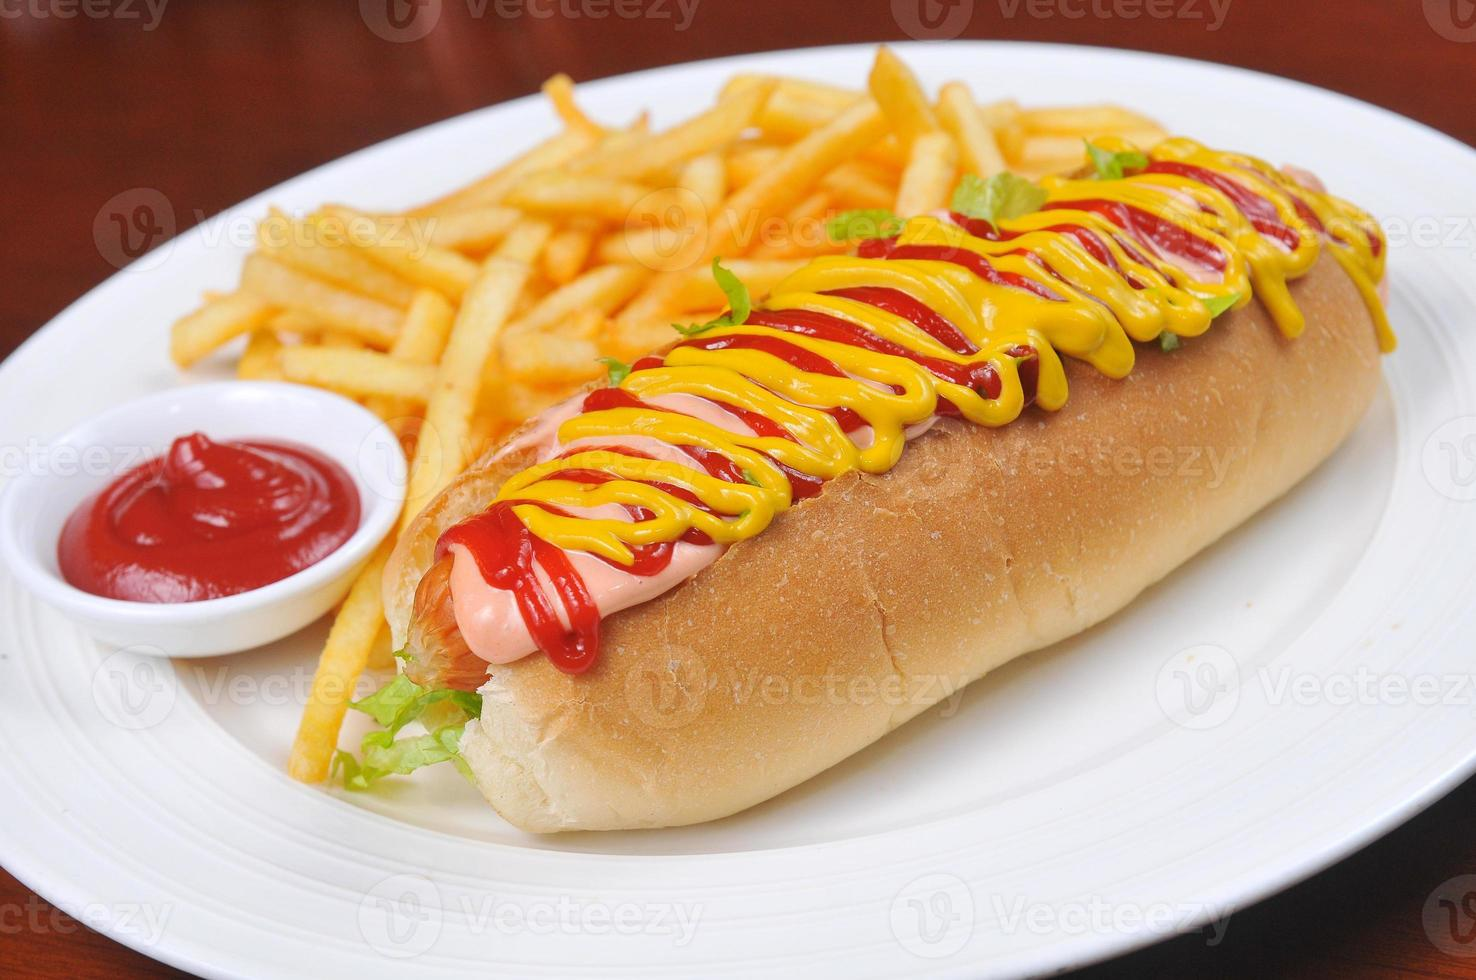 Hot dogs and French fries photo